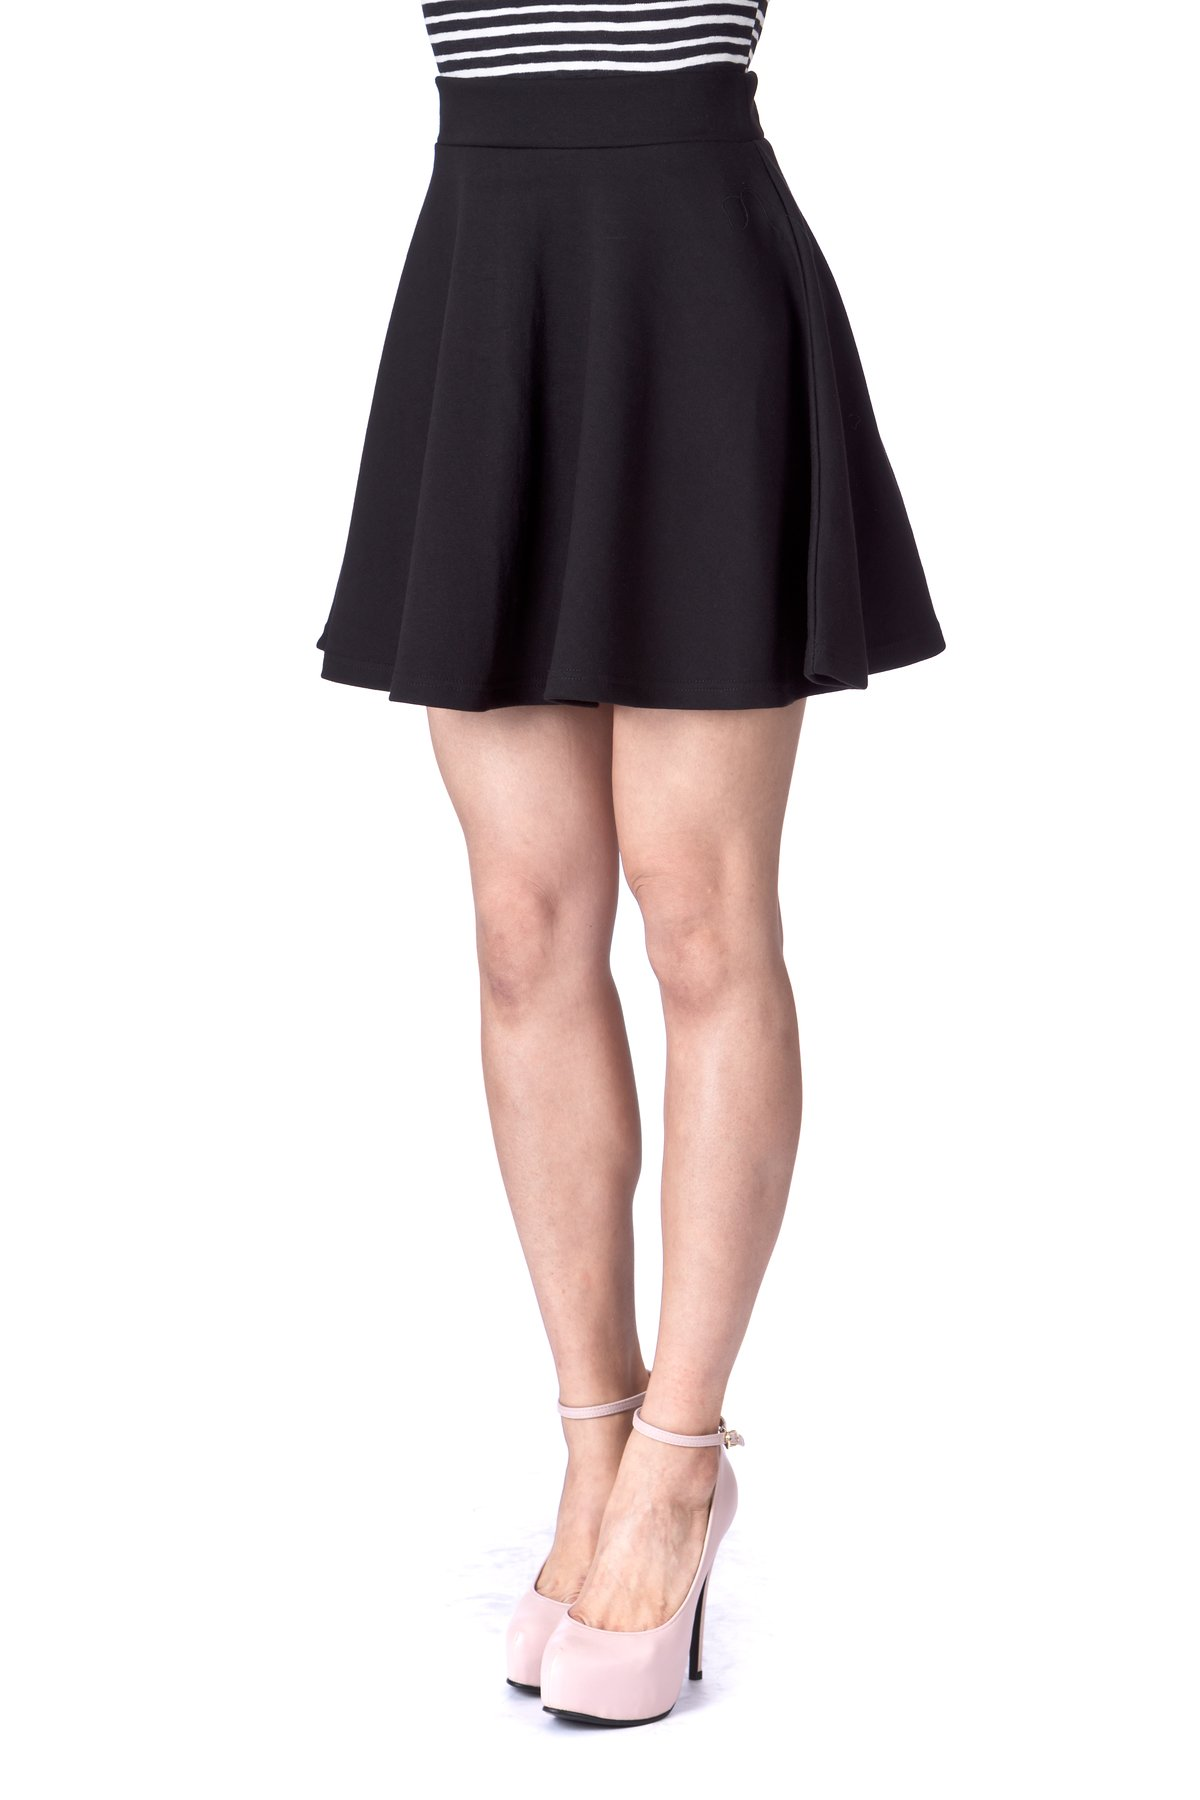 Basic Solid Stretchy Cotton High Waist A line Flared Skater Mini Skirt Black 06 1